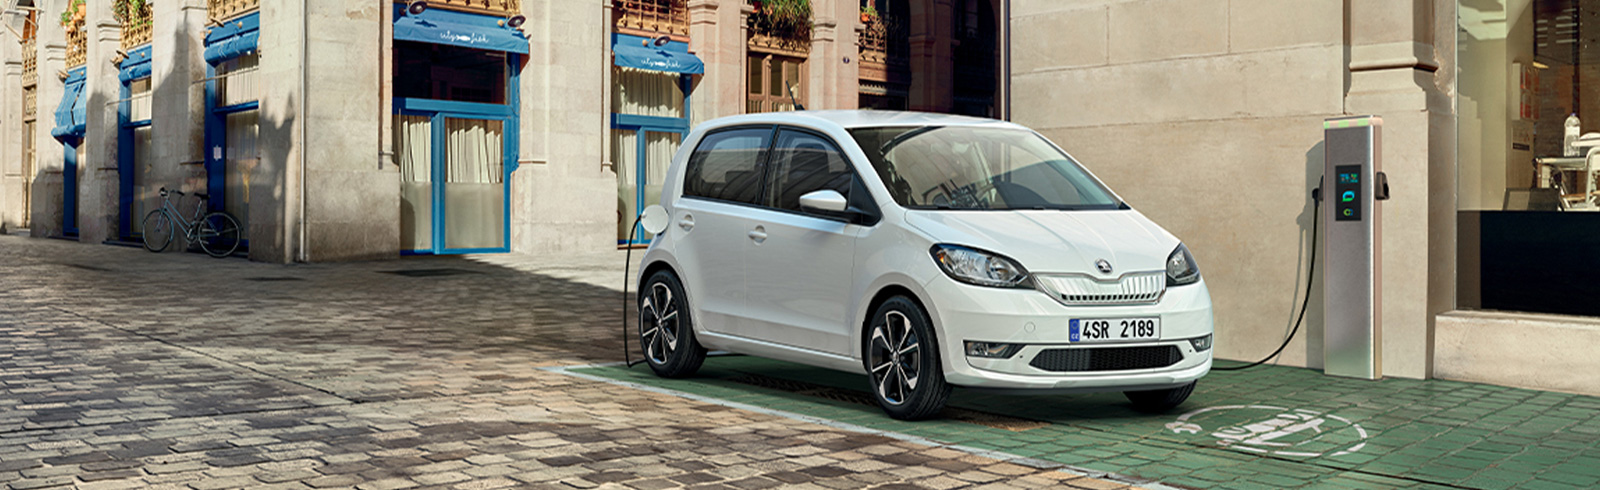 Škoda CITIGOe iV goes official with a 61 kW motor and a 36.8 kWh battery